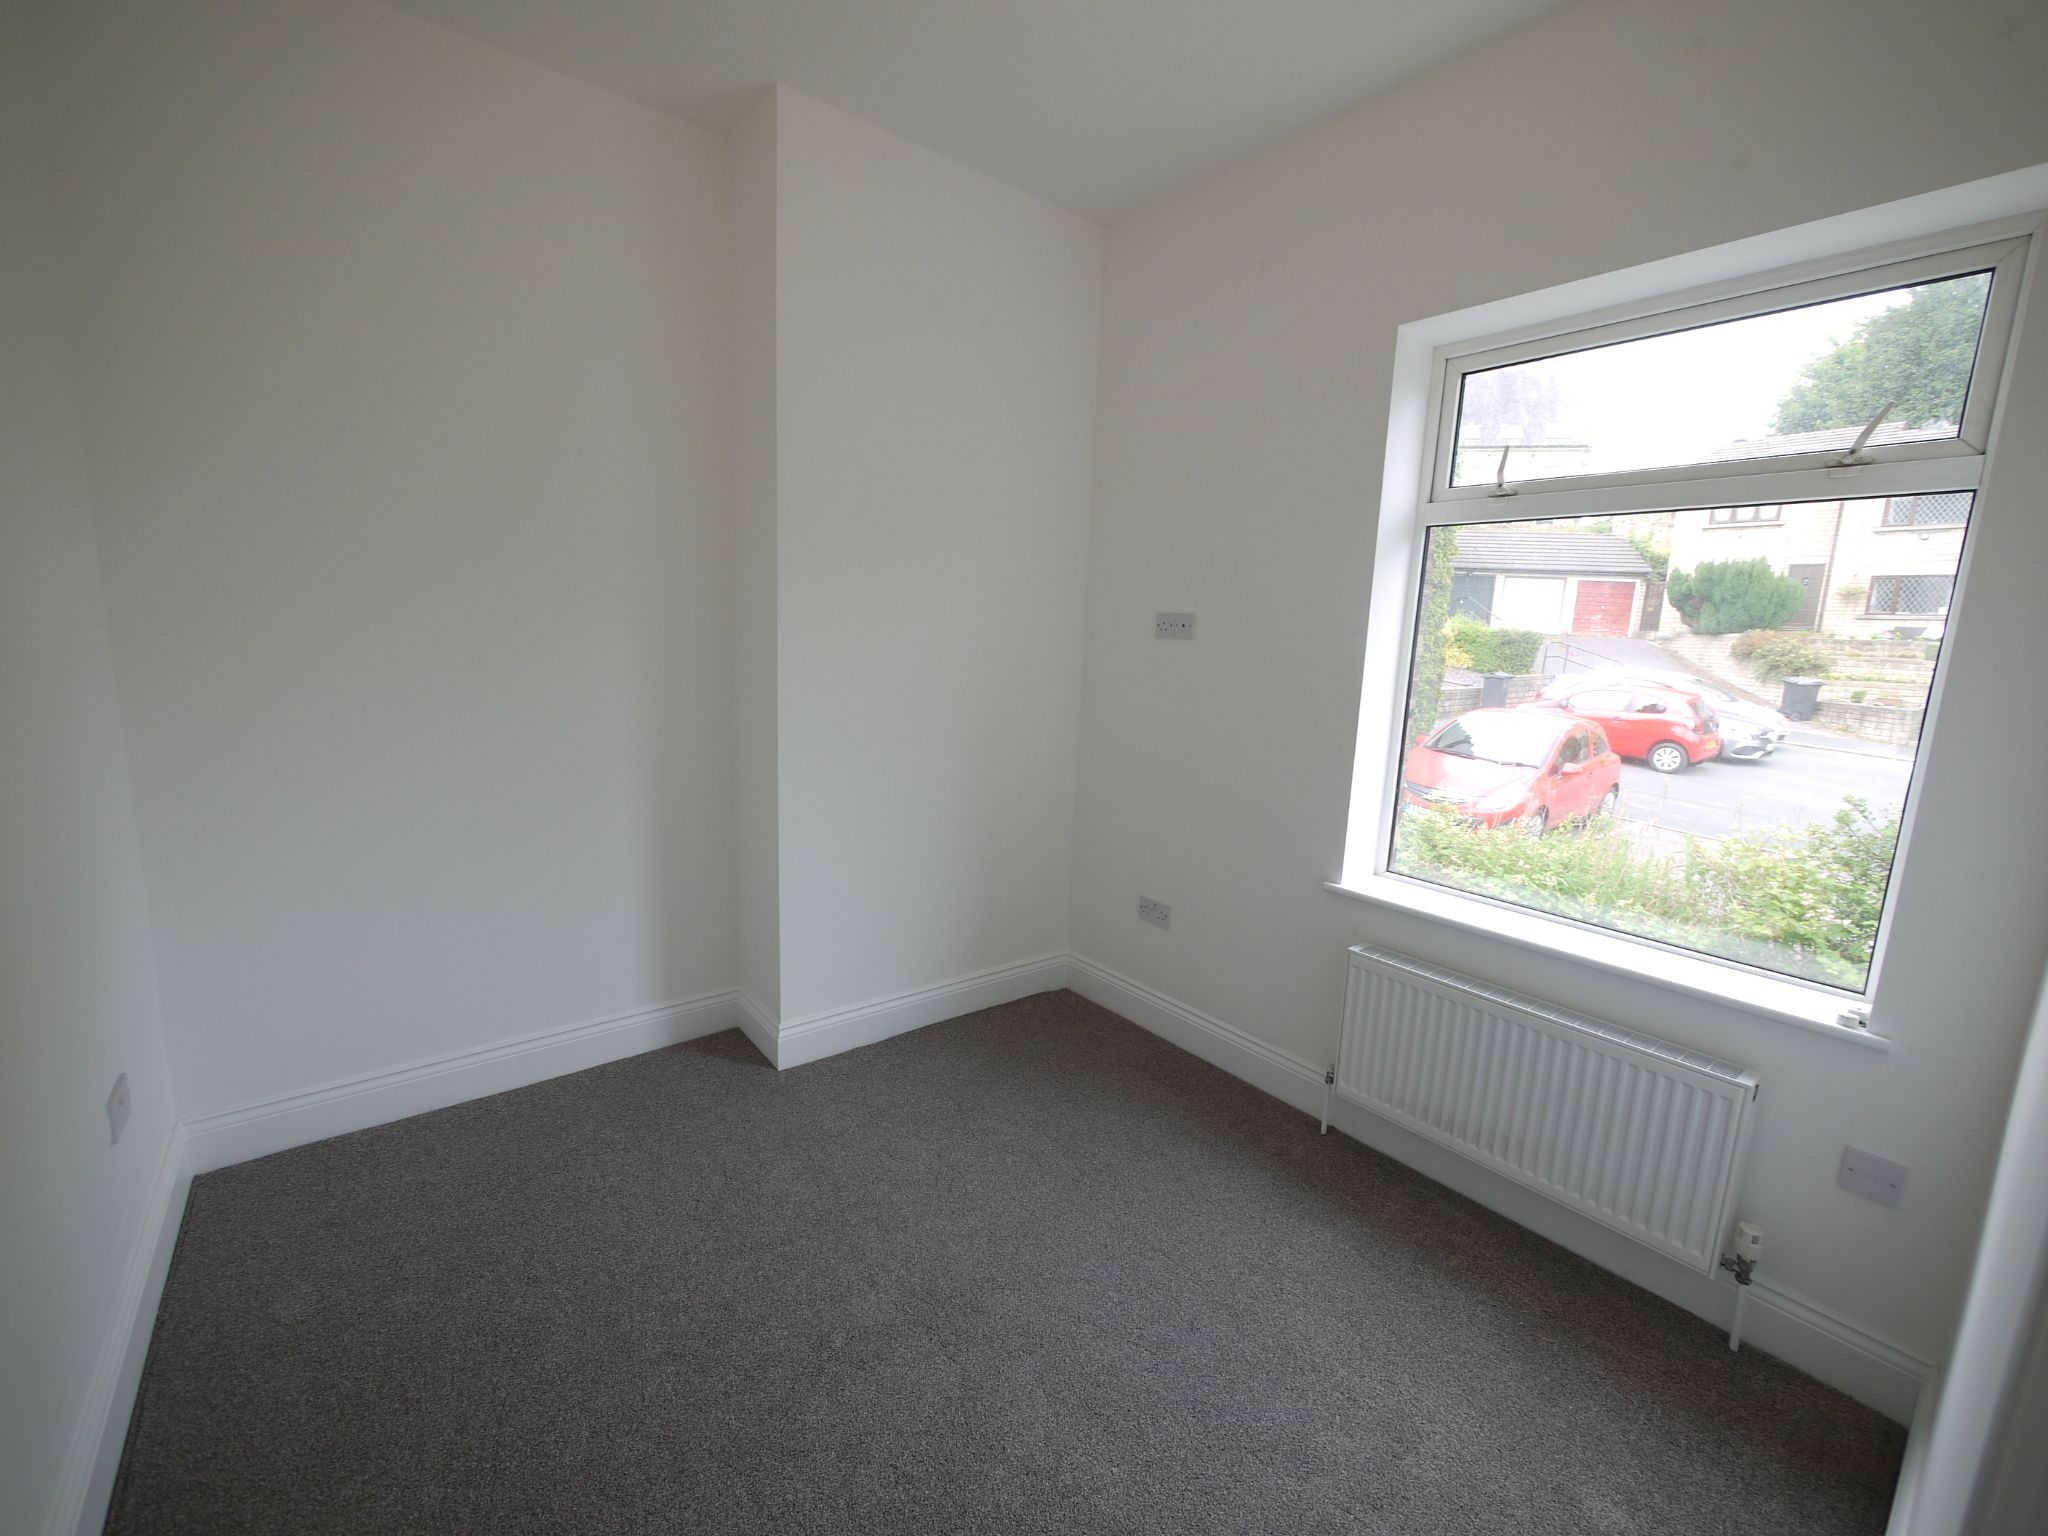 3 bedroom mid terraced house For Sale in Brighouse - bedroom 2.